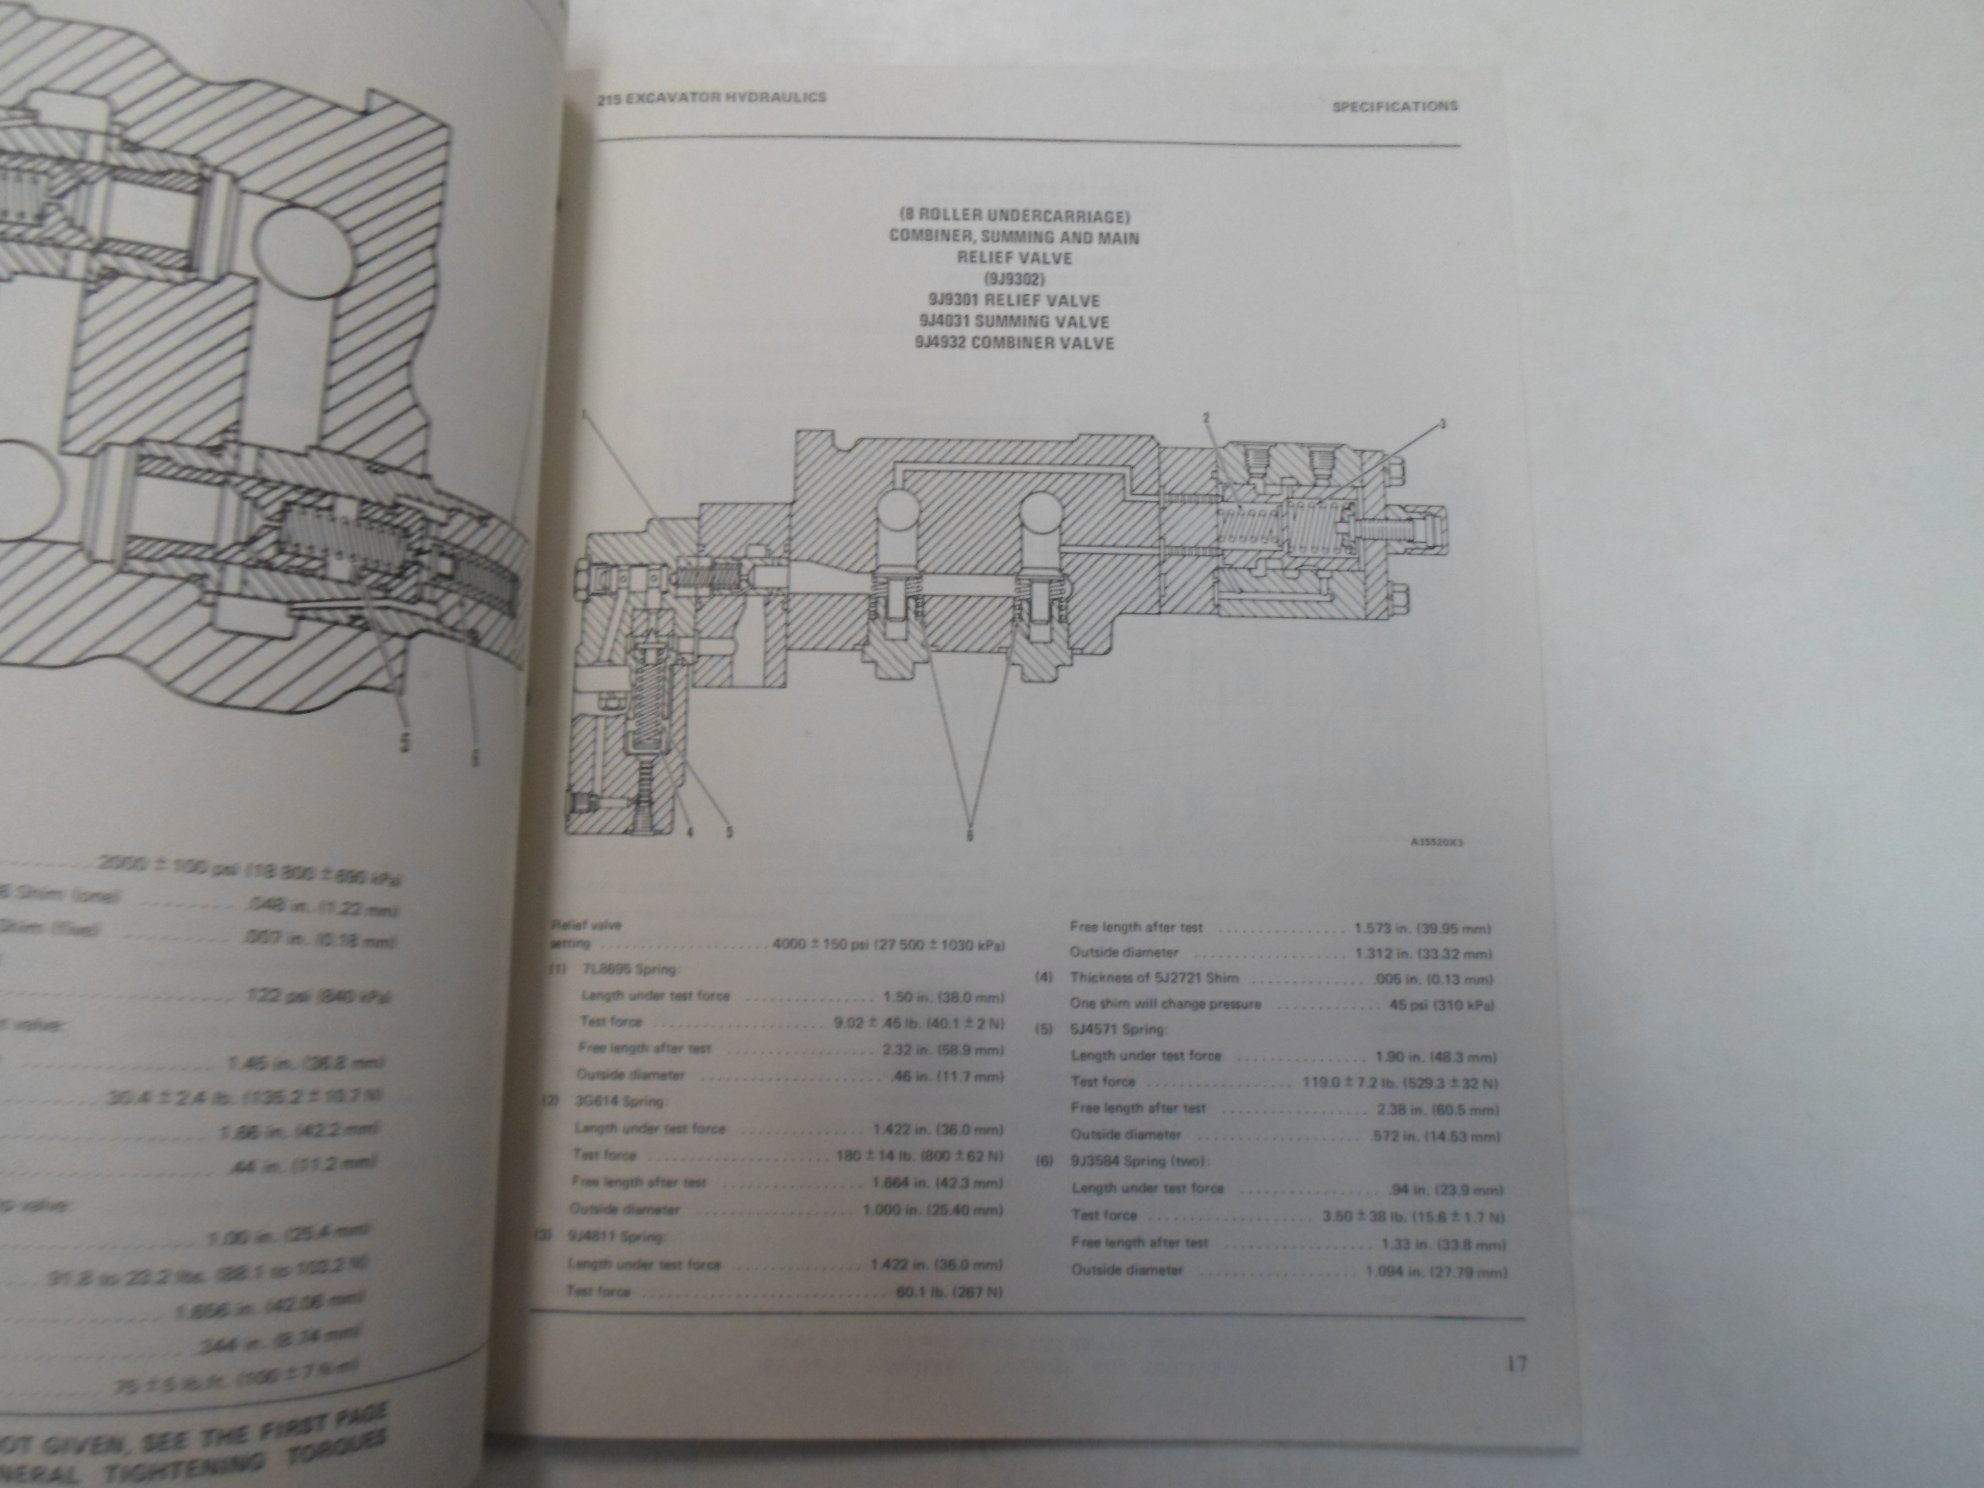 Fantastic Cat 312 Wiring Diagram Photo - Electrical and Wiring ...